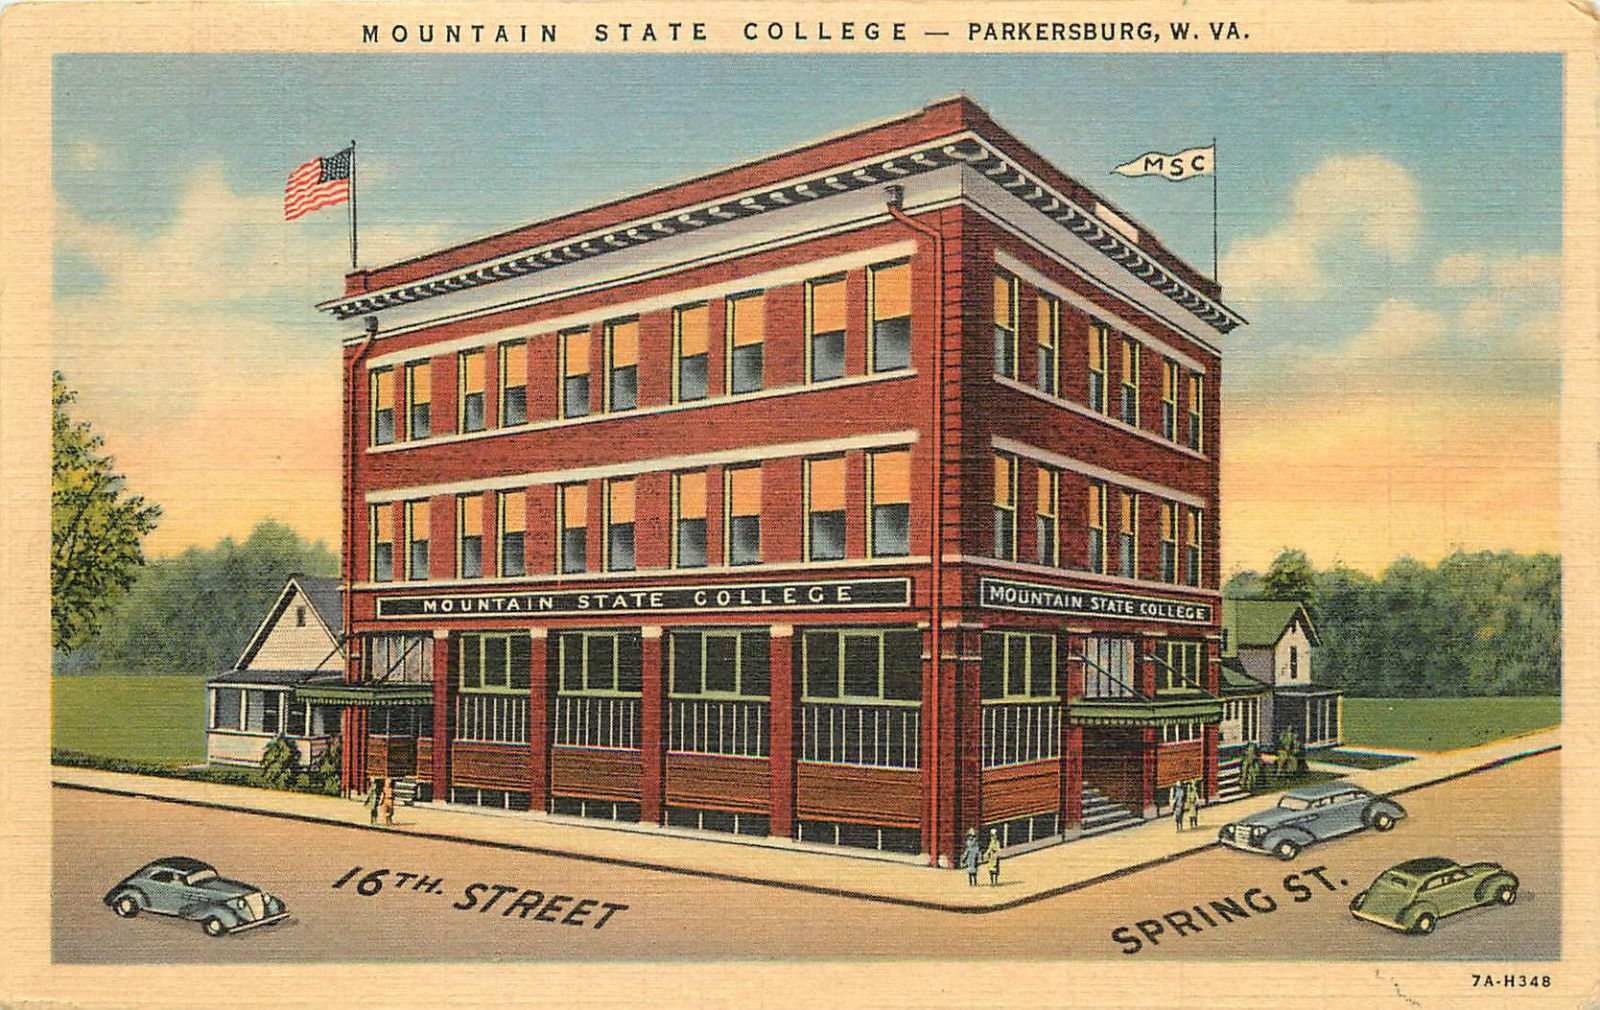 Parkersburg, WV Mountain State College 16th and Spring